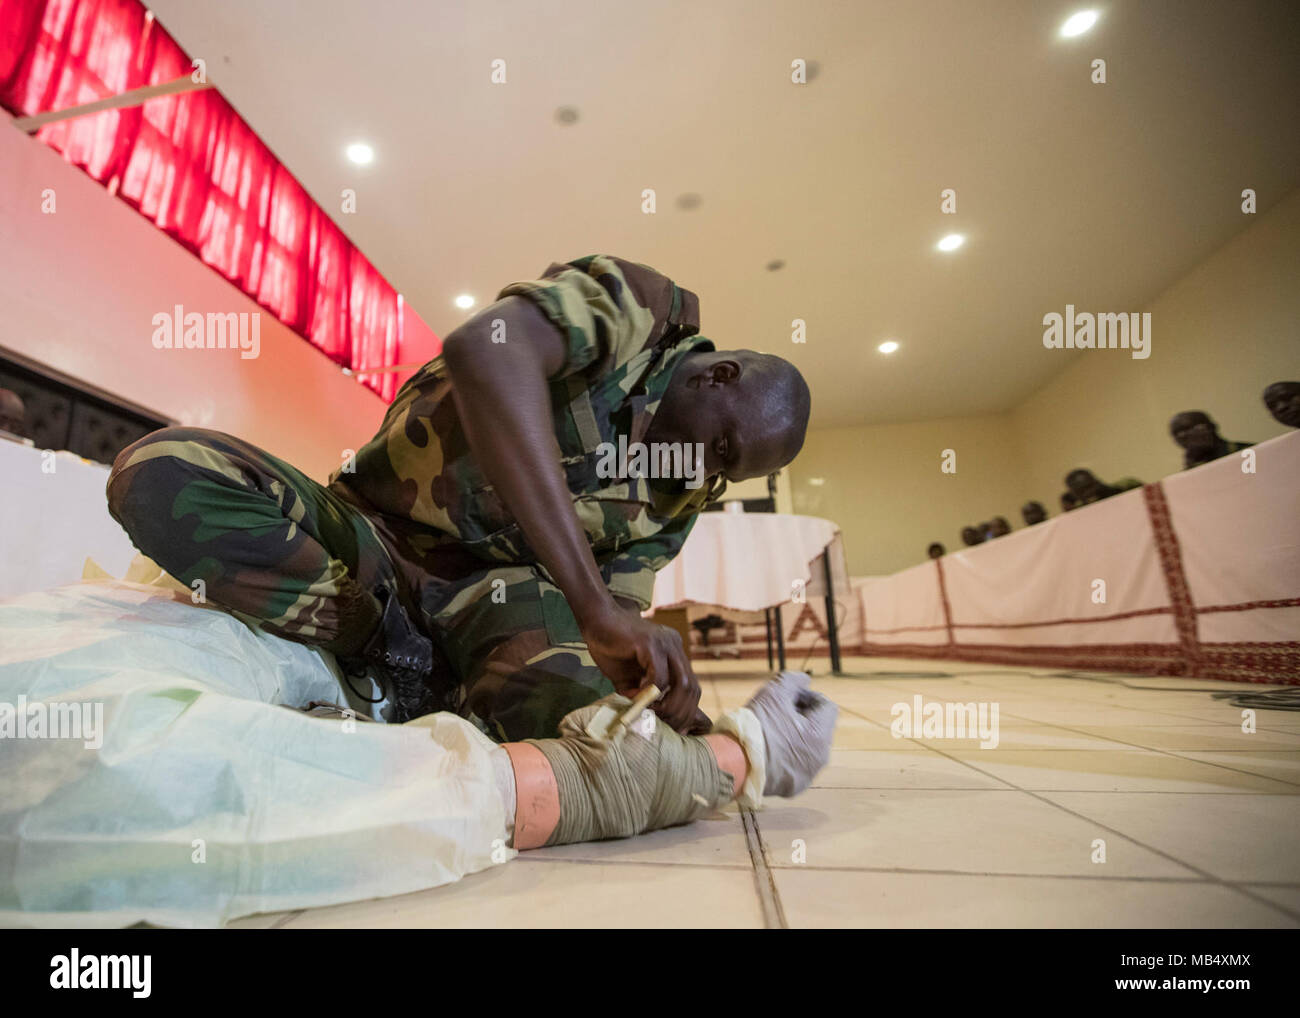 Cpl. Birame Faye, infirmier with the Senegalese Army, demonstrates pre-hospital trauma care during a timed scenario at a workshop taught by U.S. Army medical personnel at Base Militaire Bel Air, Senegal, during MEDRETE 18-1, Feb. 20, 2018. MEDRETE is a combined effort between the Senegalese government, U.S. Army Africa, and the Vermont National Guard. MEDRETE 18-1 is the first in a series of medical readiness training exercises that U.S. Army Africa is scheduled to facilitate within various countries in Africa, and serves as an opportunity for the partnered militaries to hone and strengthen th - Stock Image